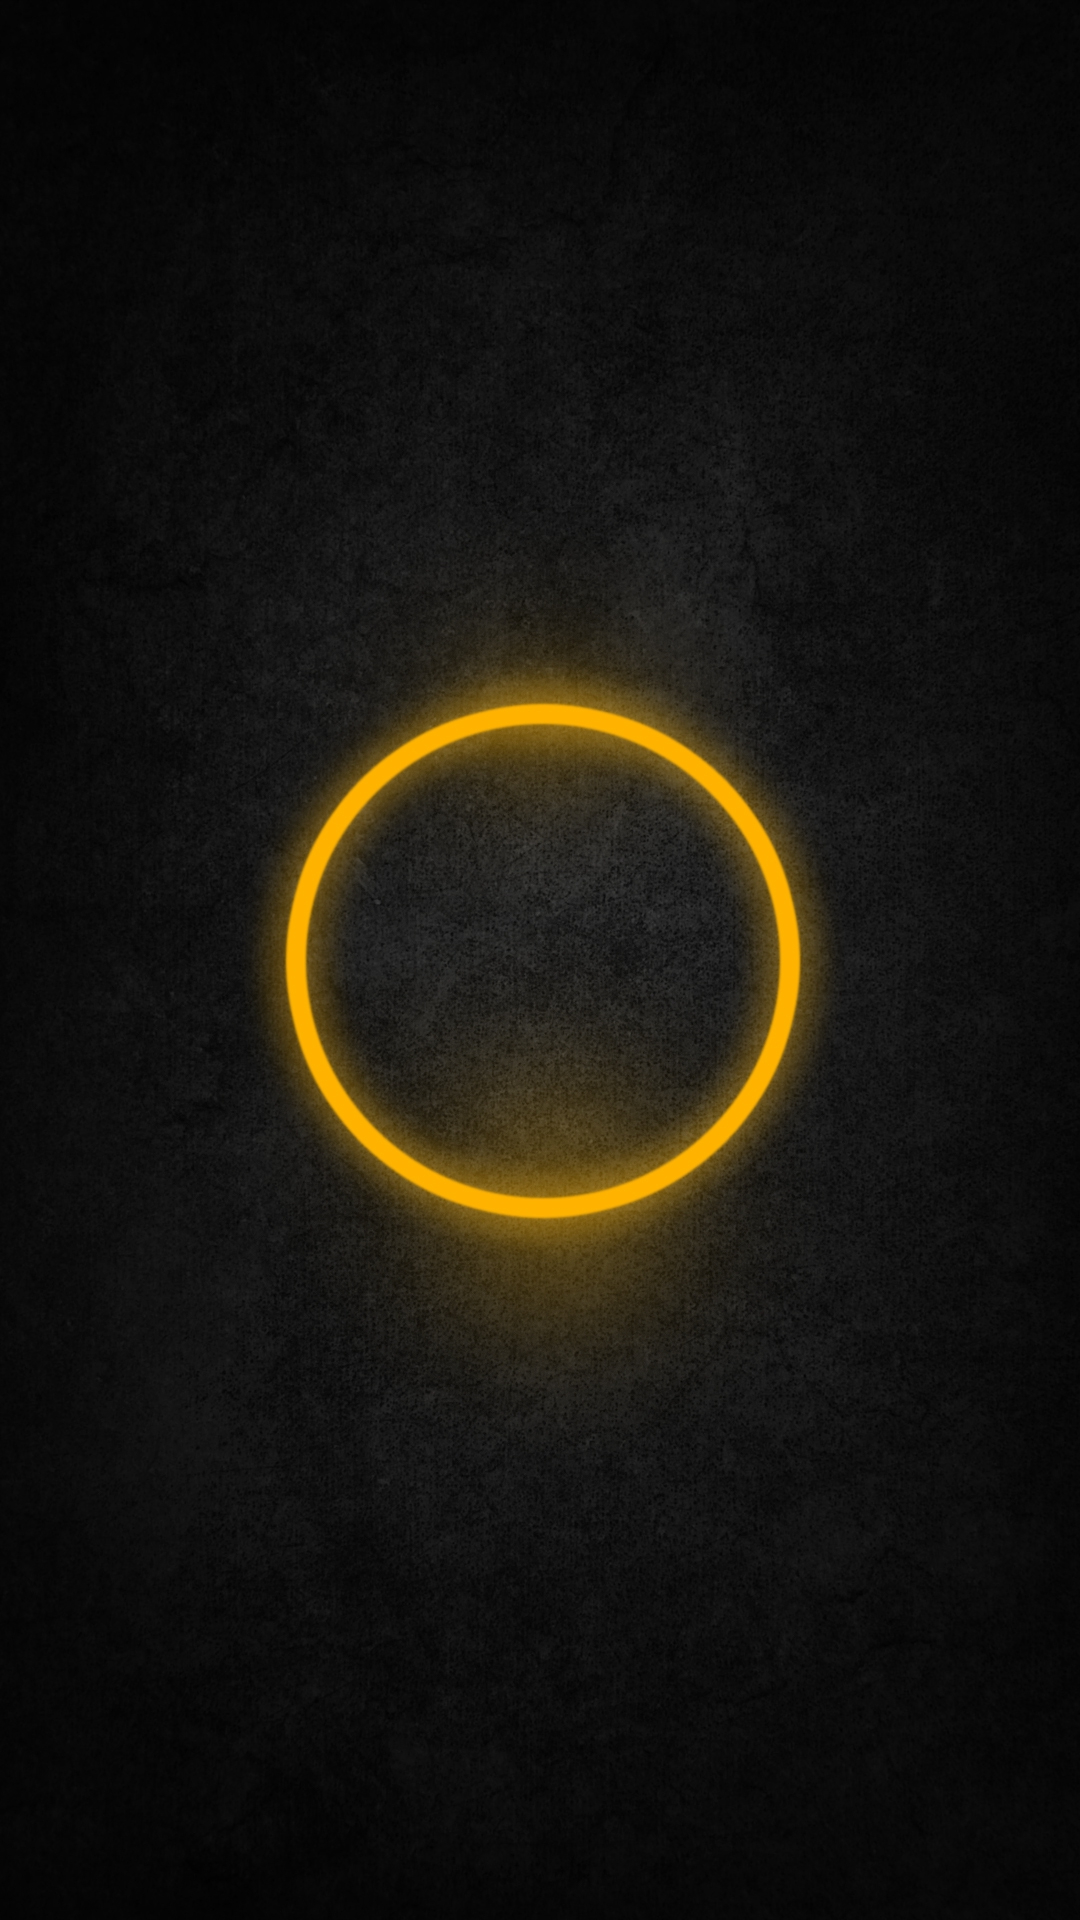 Golden ring HTC hd wallpaper